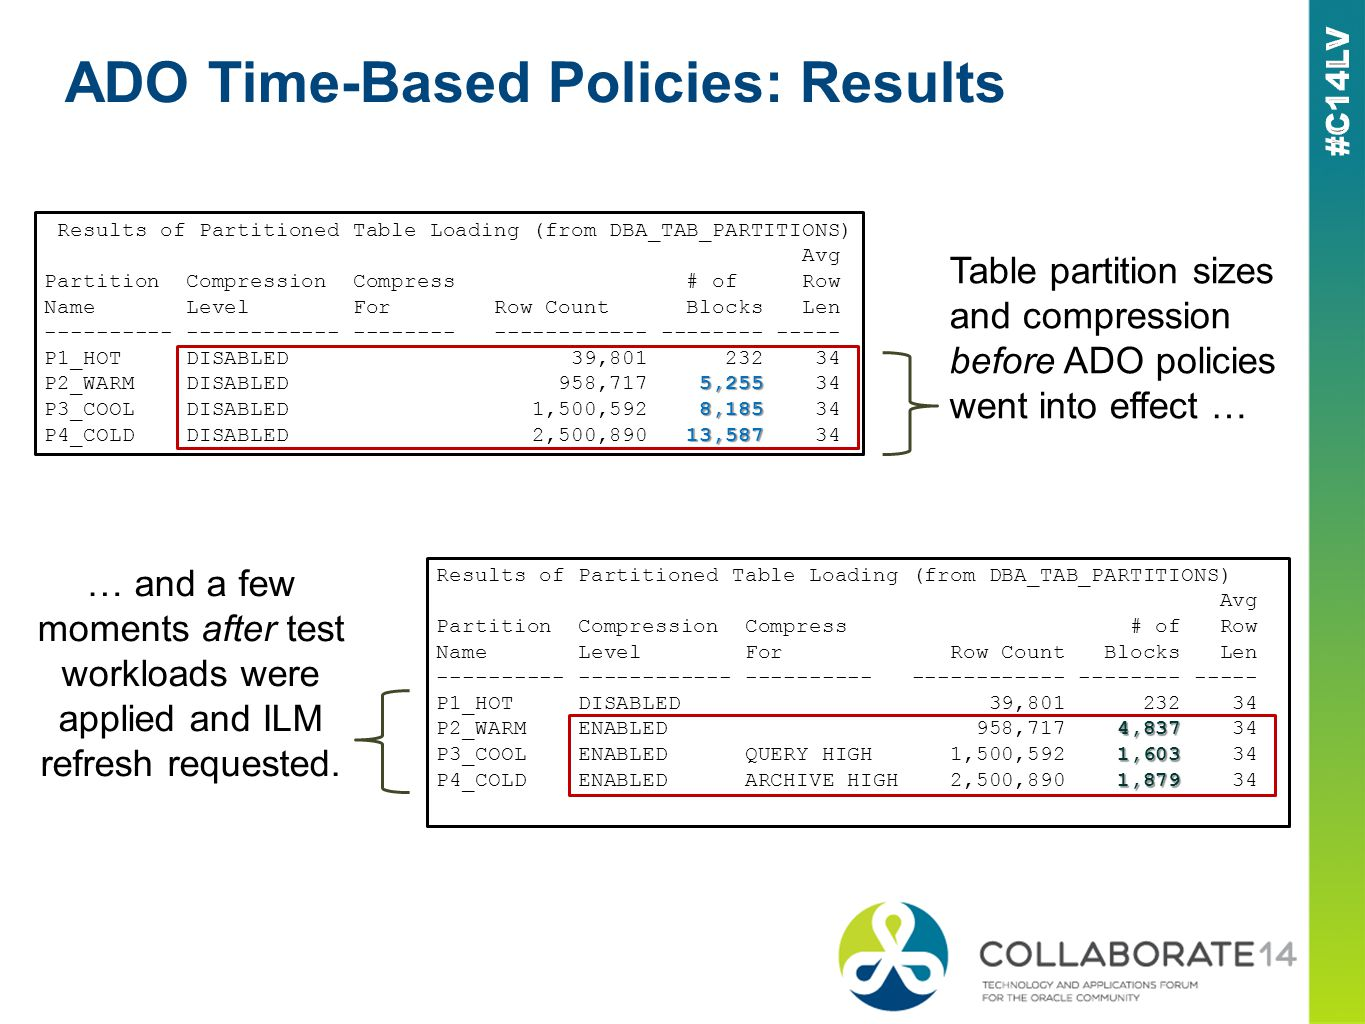 ADO Time-Based Policies: Results Results of Partitioned Table Loading (from DBA_TAB_PARTITIONS) Avg Partition Compression Compress # of Row Name Level For Row Count Blocks Len ---------- ------------ -------- ------------ -------- ----- P1_HOT DISABLED 39,801 232 34 5,255 P2_WARM DISABLED 958,717 5,255 34 8,185 P3_COOL DISABLED 1,500,592 8,185 34 13,587 P4_COLD DISABLED 2,500,890 13,587 34 Results of Partitioned Table Loading (from DBA_TAB_PARTITIONS) Avg Partition Compression Compress # of Row Name Level For Row Count Blocks Len ---------- ------------ ---------- ------------ -------- ----- P1_HOT DISABLED 39,801 232 34 4,837 P2_WARM ENABLED 958,717 4,837 34 1,603 P3_COOL ENABLED QUERY HIGH 1,500,592 1,603 34 1,879 P4_COLD ENABLED ARCHIVE HIGH 2,500,890 1,879 34 Table partition sizes and compression before ADO policies went into effect … … and a few moments after test workloads were applied and ILM refresh requested.